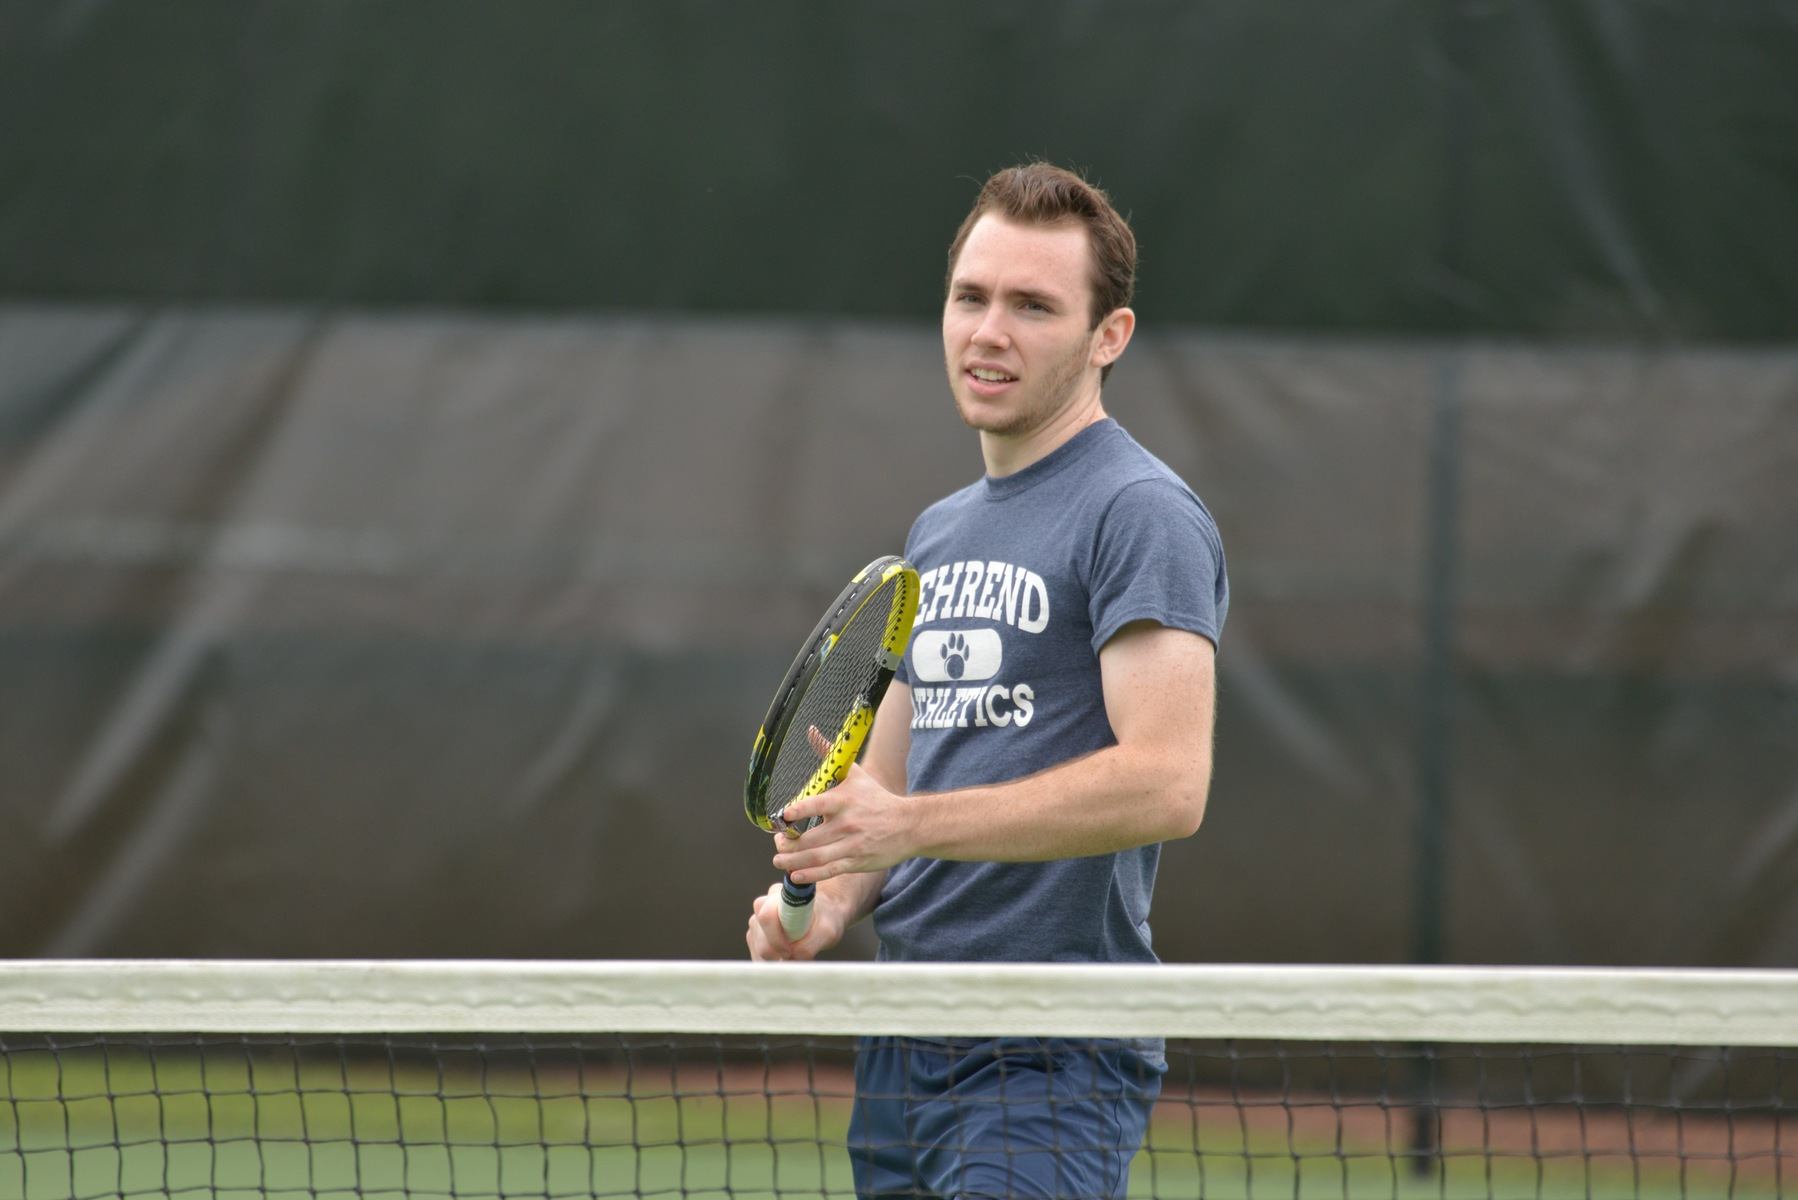 Men's Tennis Competes in Pair of Matches This Weekend